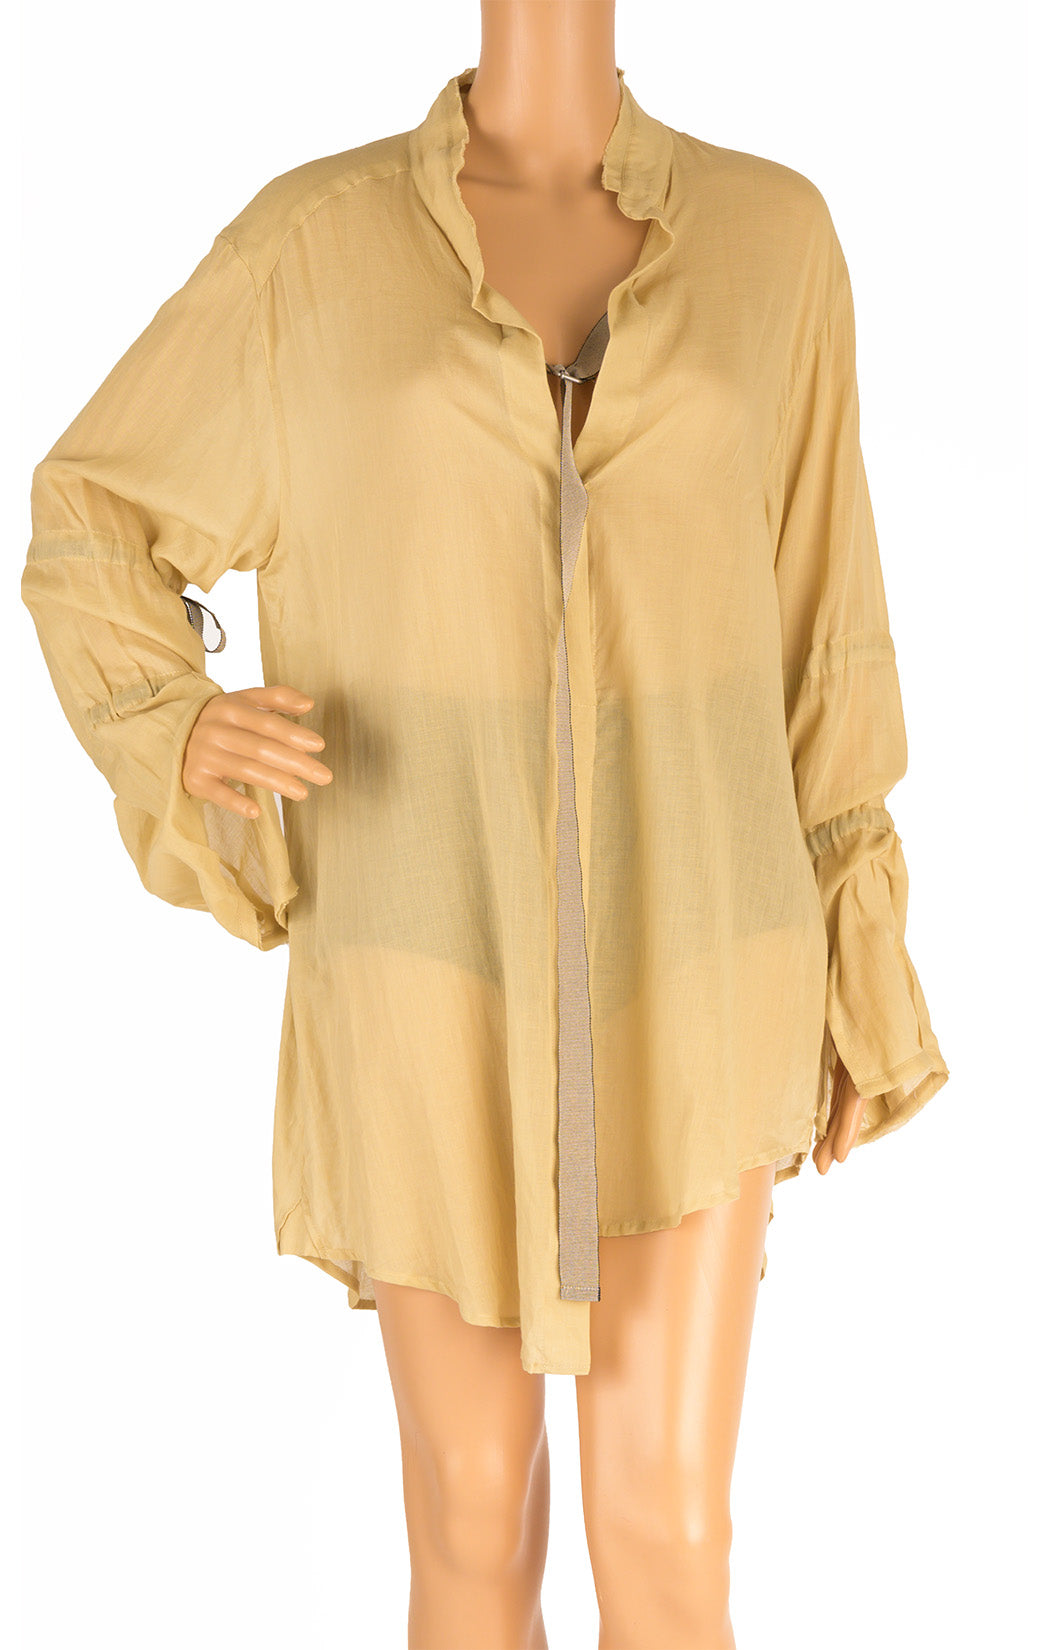 Front view of ANN DEMEULEMEESTER  Blouse Size: FR 38 (comparable to US 6)